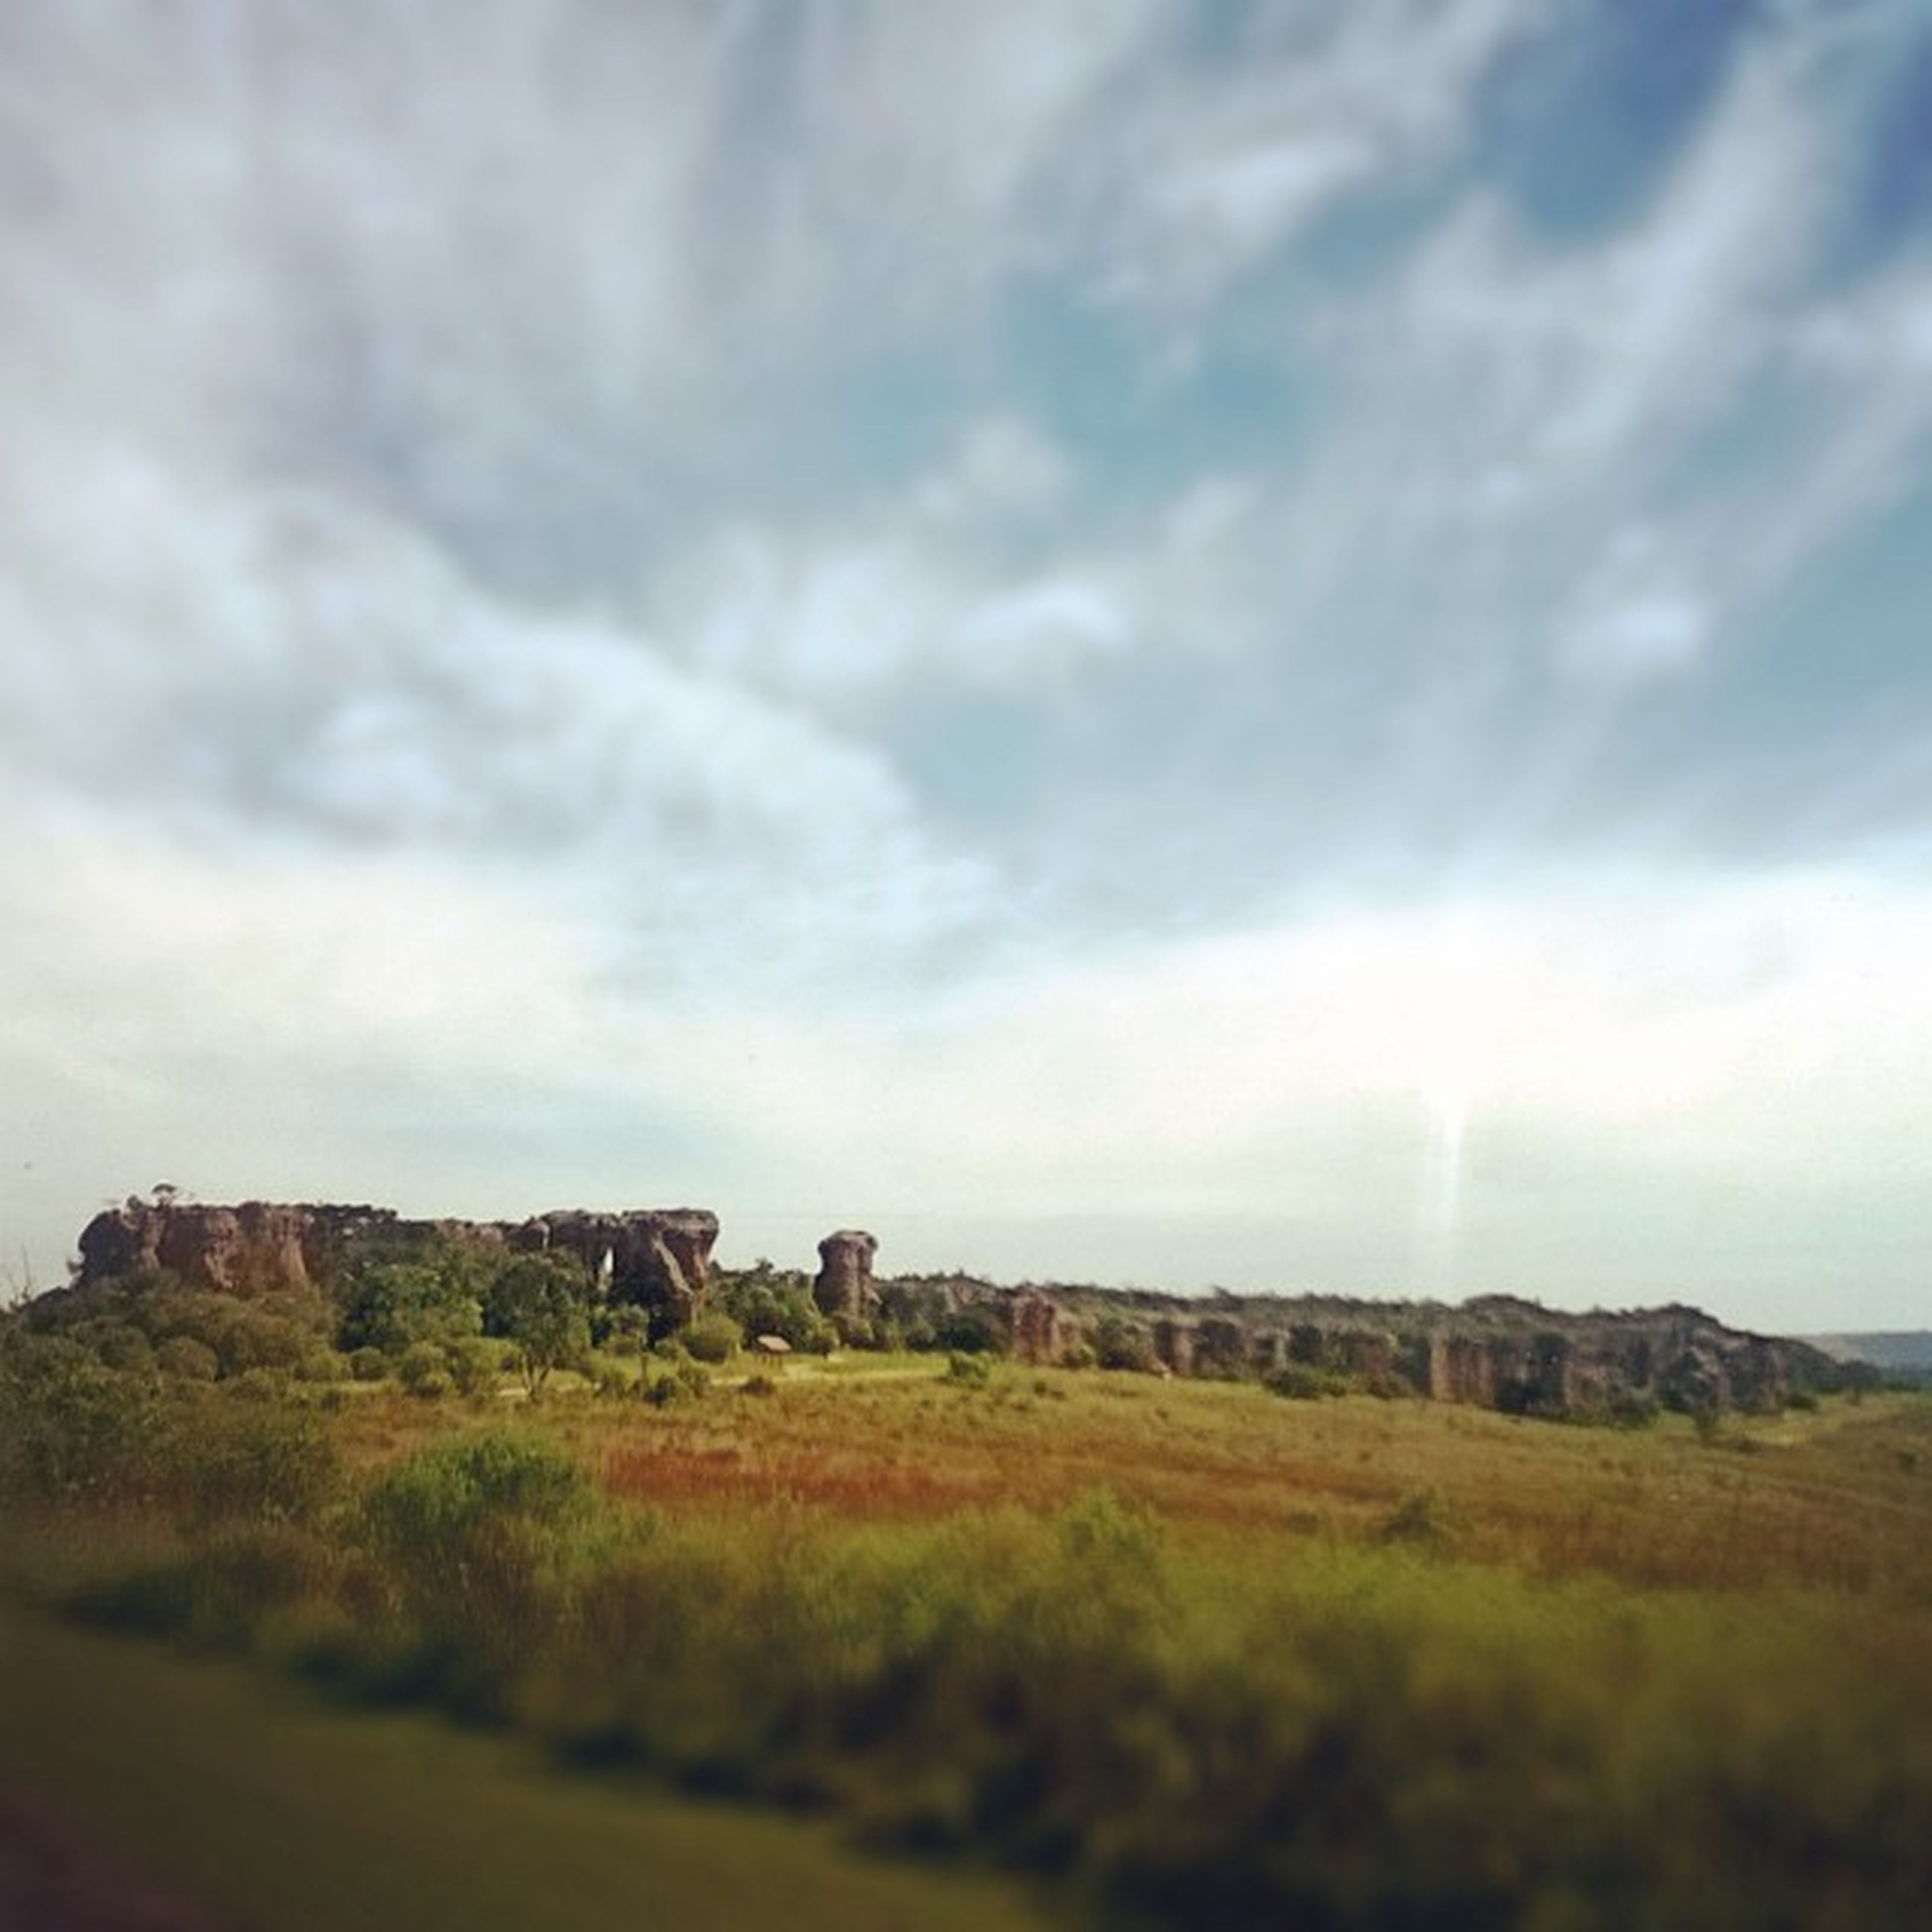 sky, cloud - sky, architecture, built structure, building exterior, landscape, cloudy, field, cloud, grass, rural scene, nature, old ruin, history, day, agriculture, tranquility, old, tranquil scene, abandoned